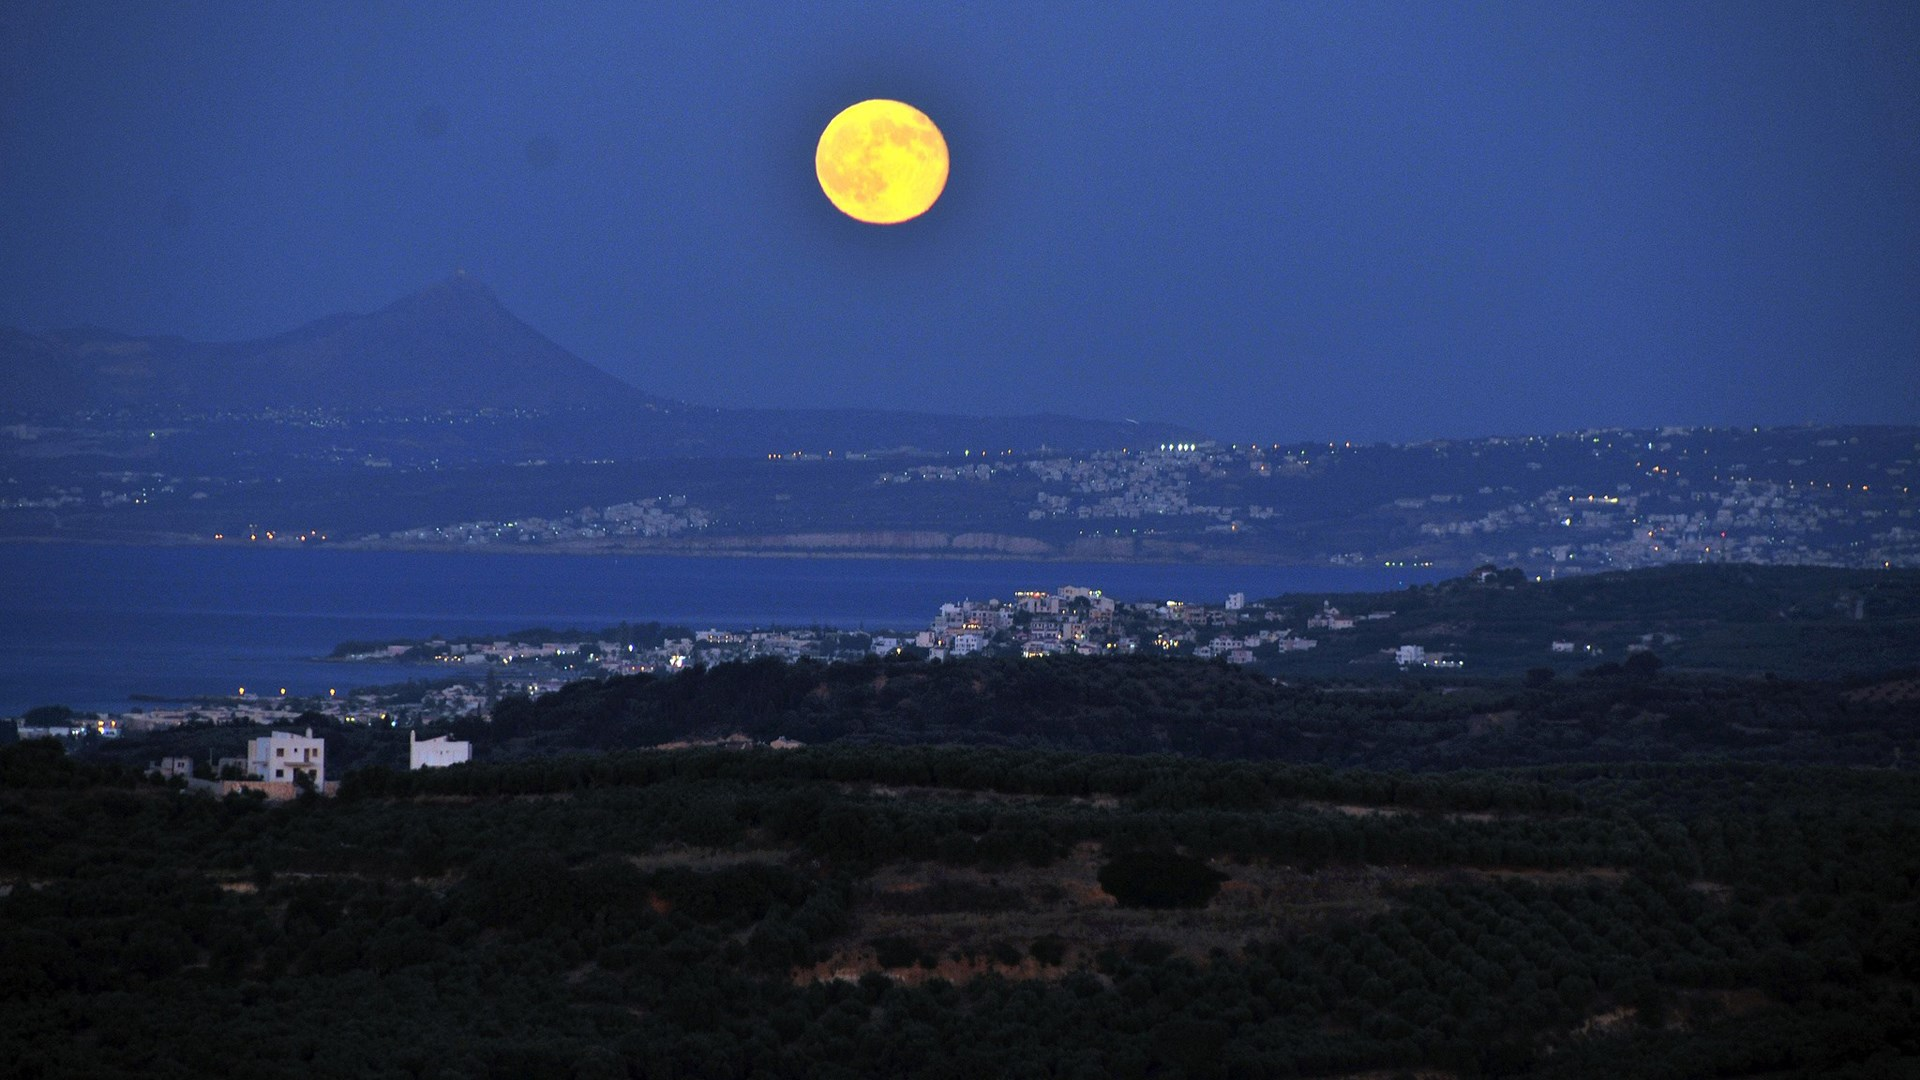 The August 2014 Full Moon | Polemarchi, Chania – Crete, Greece